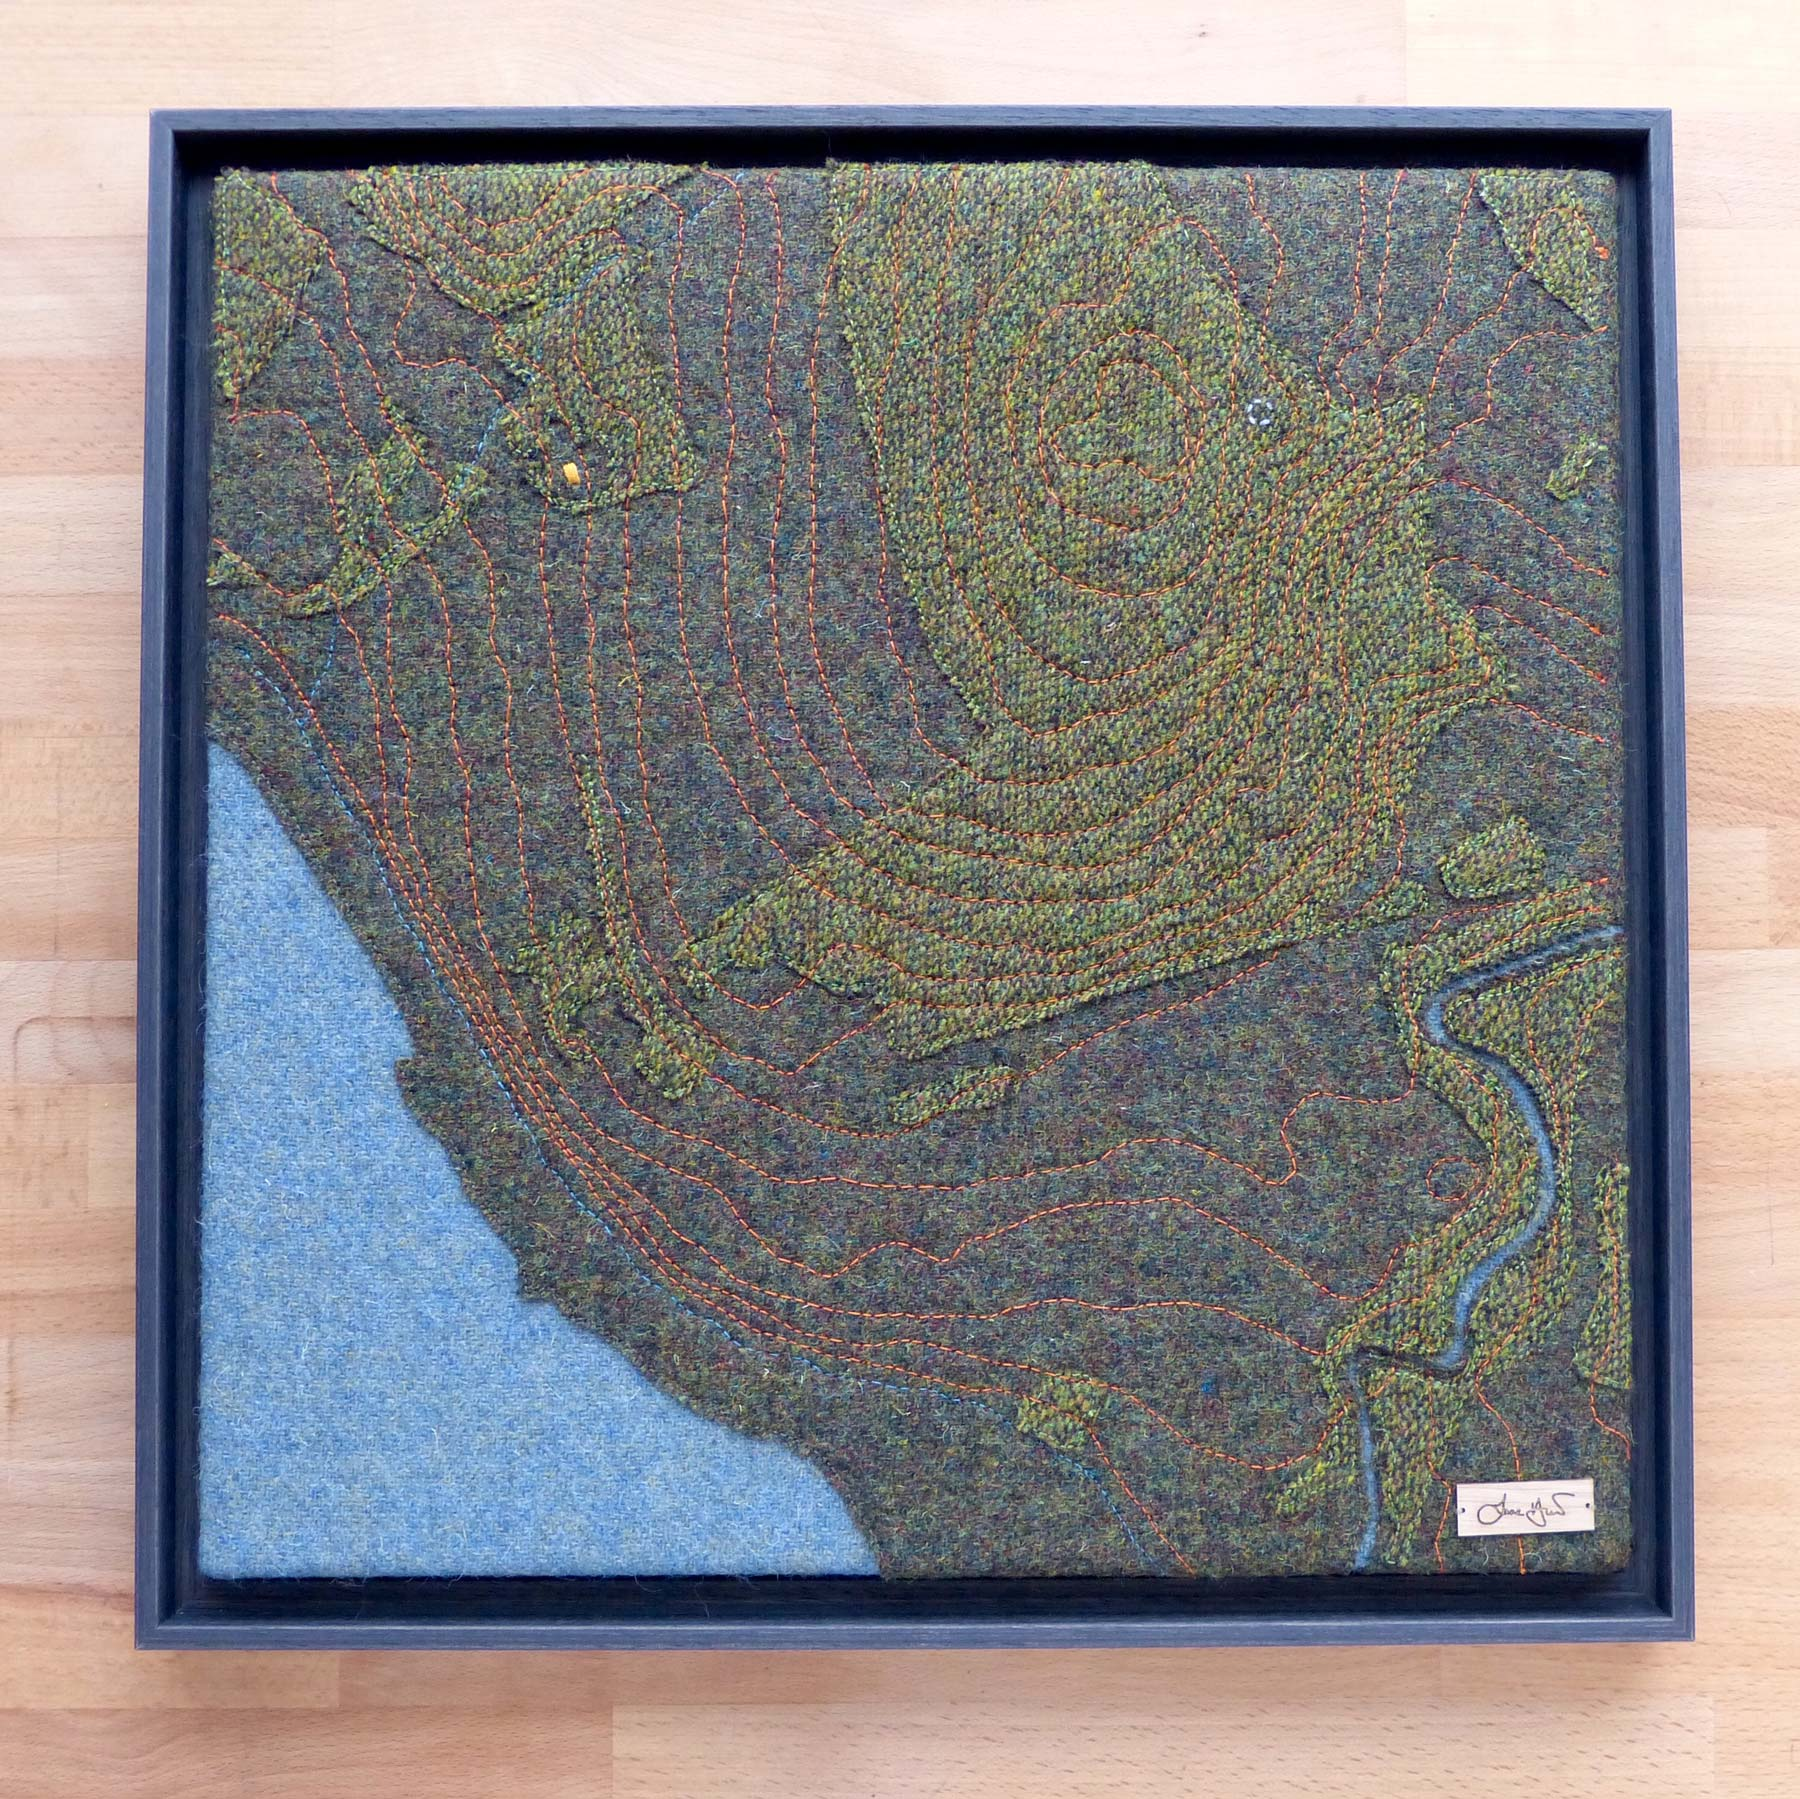 Contour Map Clachan Borodale Raasay Jane Hunter Scottish Textile Artist Harris Tweed